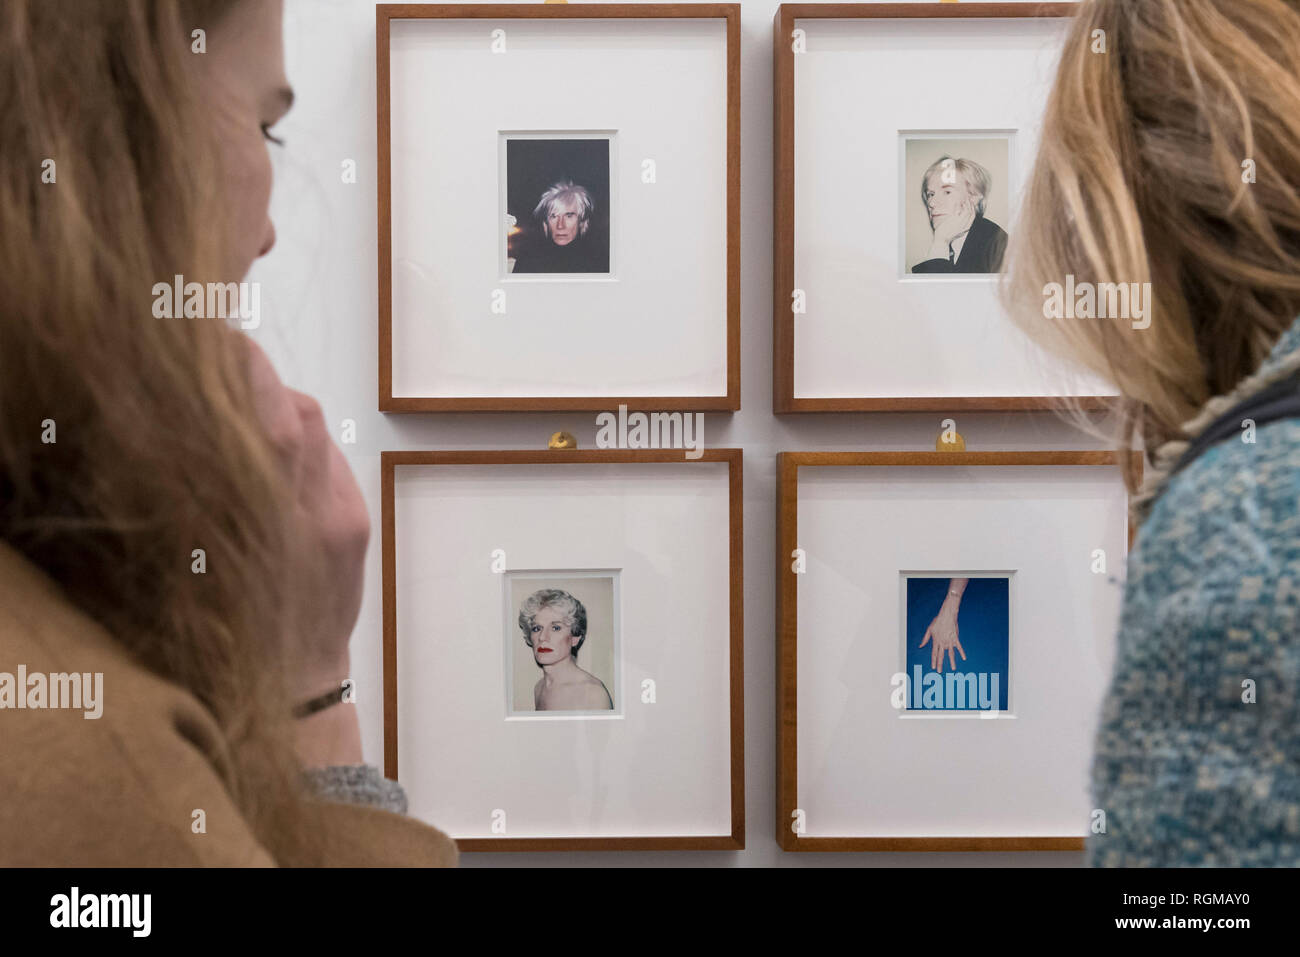 London, UK.  30 January 2019. Visitors view a series of self-portraits (1977 to 1986) by Andy Warhol. Preview of 'Andy Warhol Polaroid Pictures', an exhibition of over 60 portrait and self-portrait Polaroid photographs by Andy Warhol.  The works, which depict artists, actors, politicians and friends of his Factory entourage in New York during the 1970s and 80s, are on display 2 February to 13 April 2019 at Bastian Gallery in Mayfair.  Credit: Stephen Chung / Alamy Live News - Stock Image